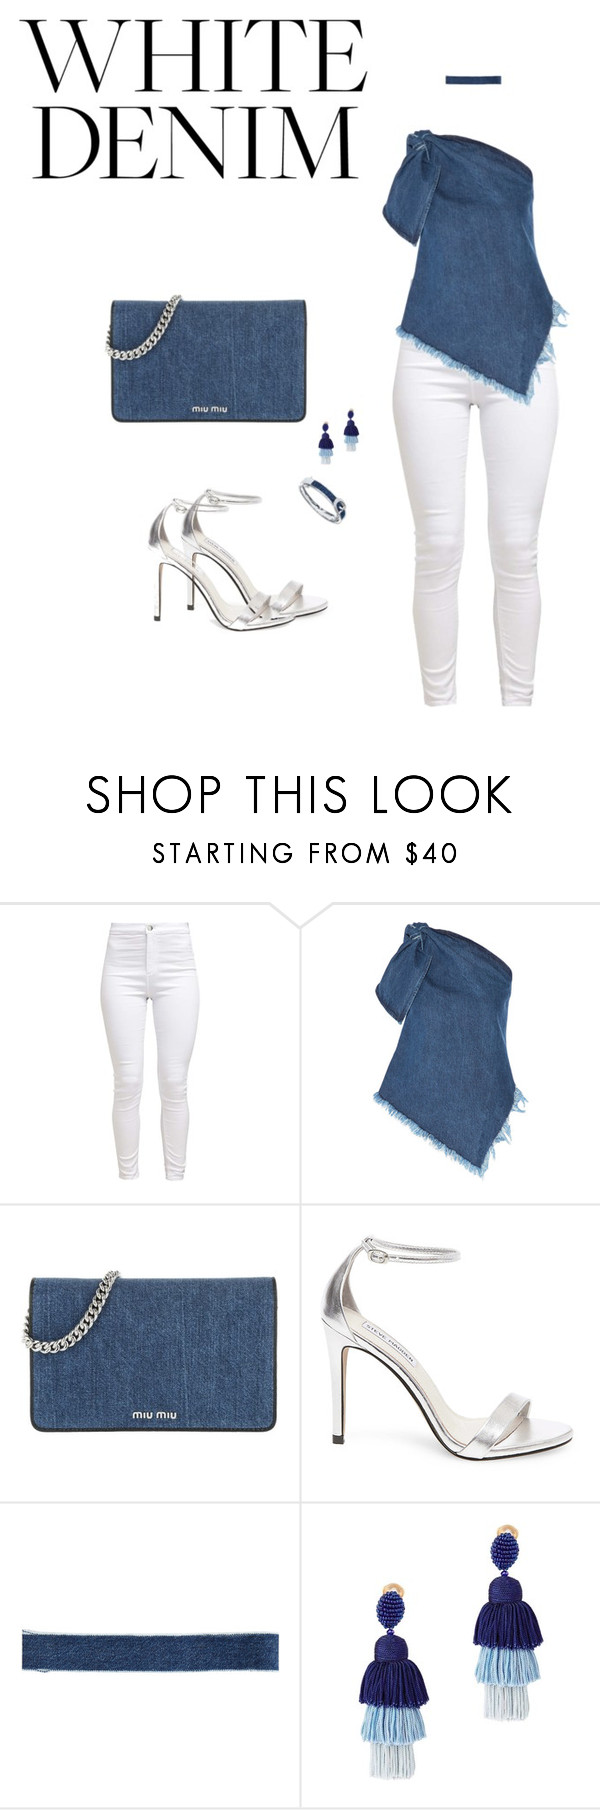 """""""Untitled #81"""" by laurenhanrahan ❤ liked on Polyvore featuring Marques'Almeida, Miu Miu, Steve Madden, Electric Picks and Oscar de la Renta"""